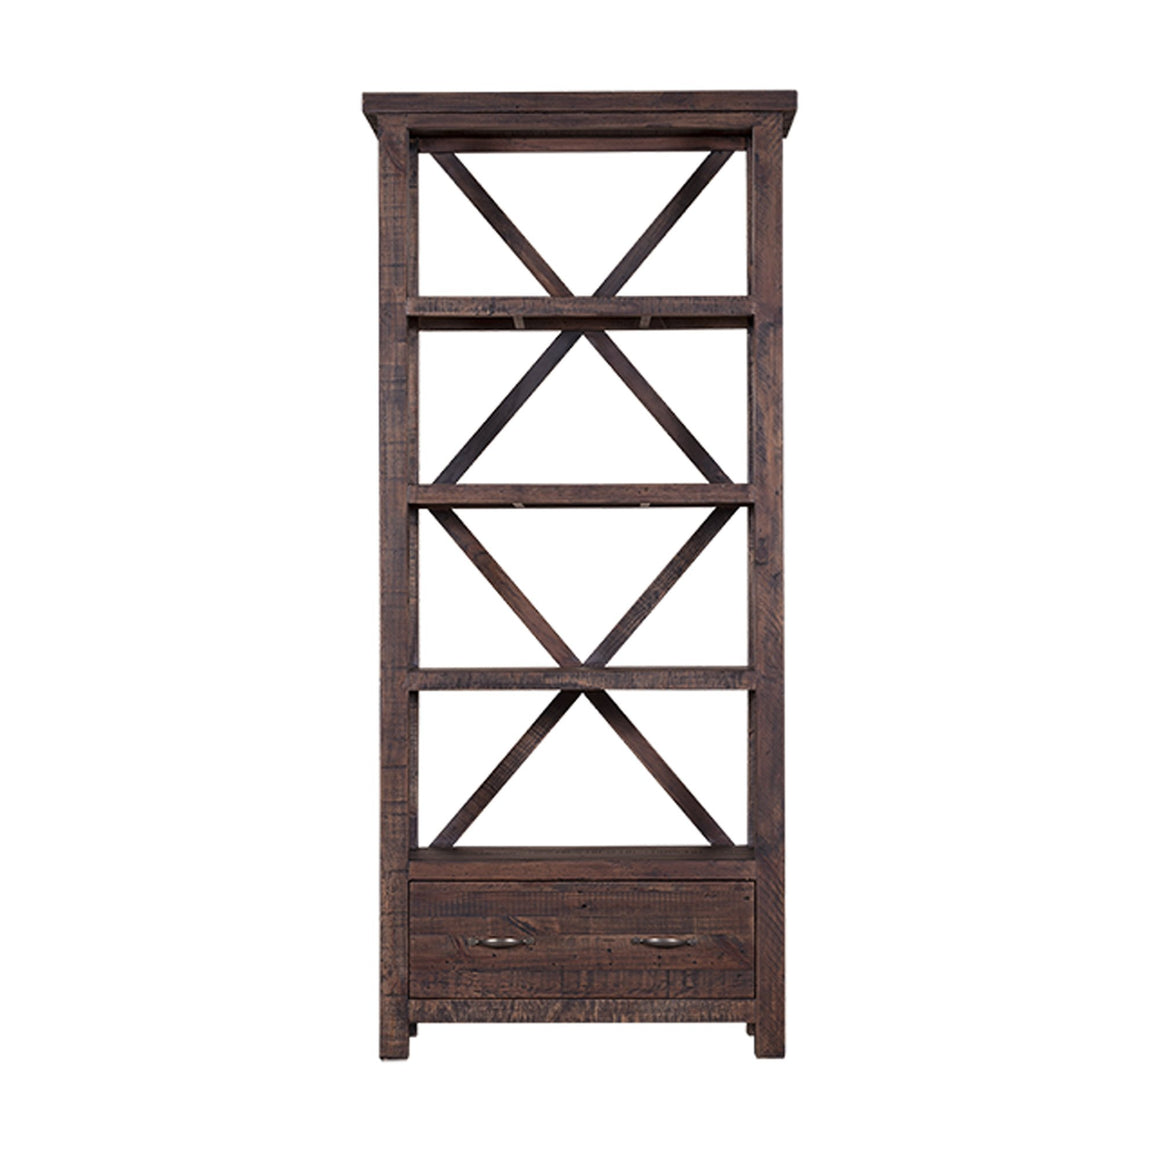 Alfresco Bookcase - Smokey Brown